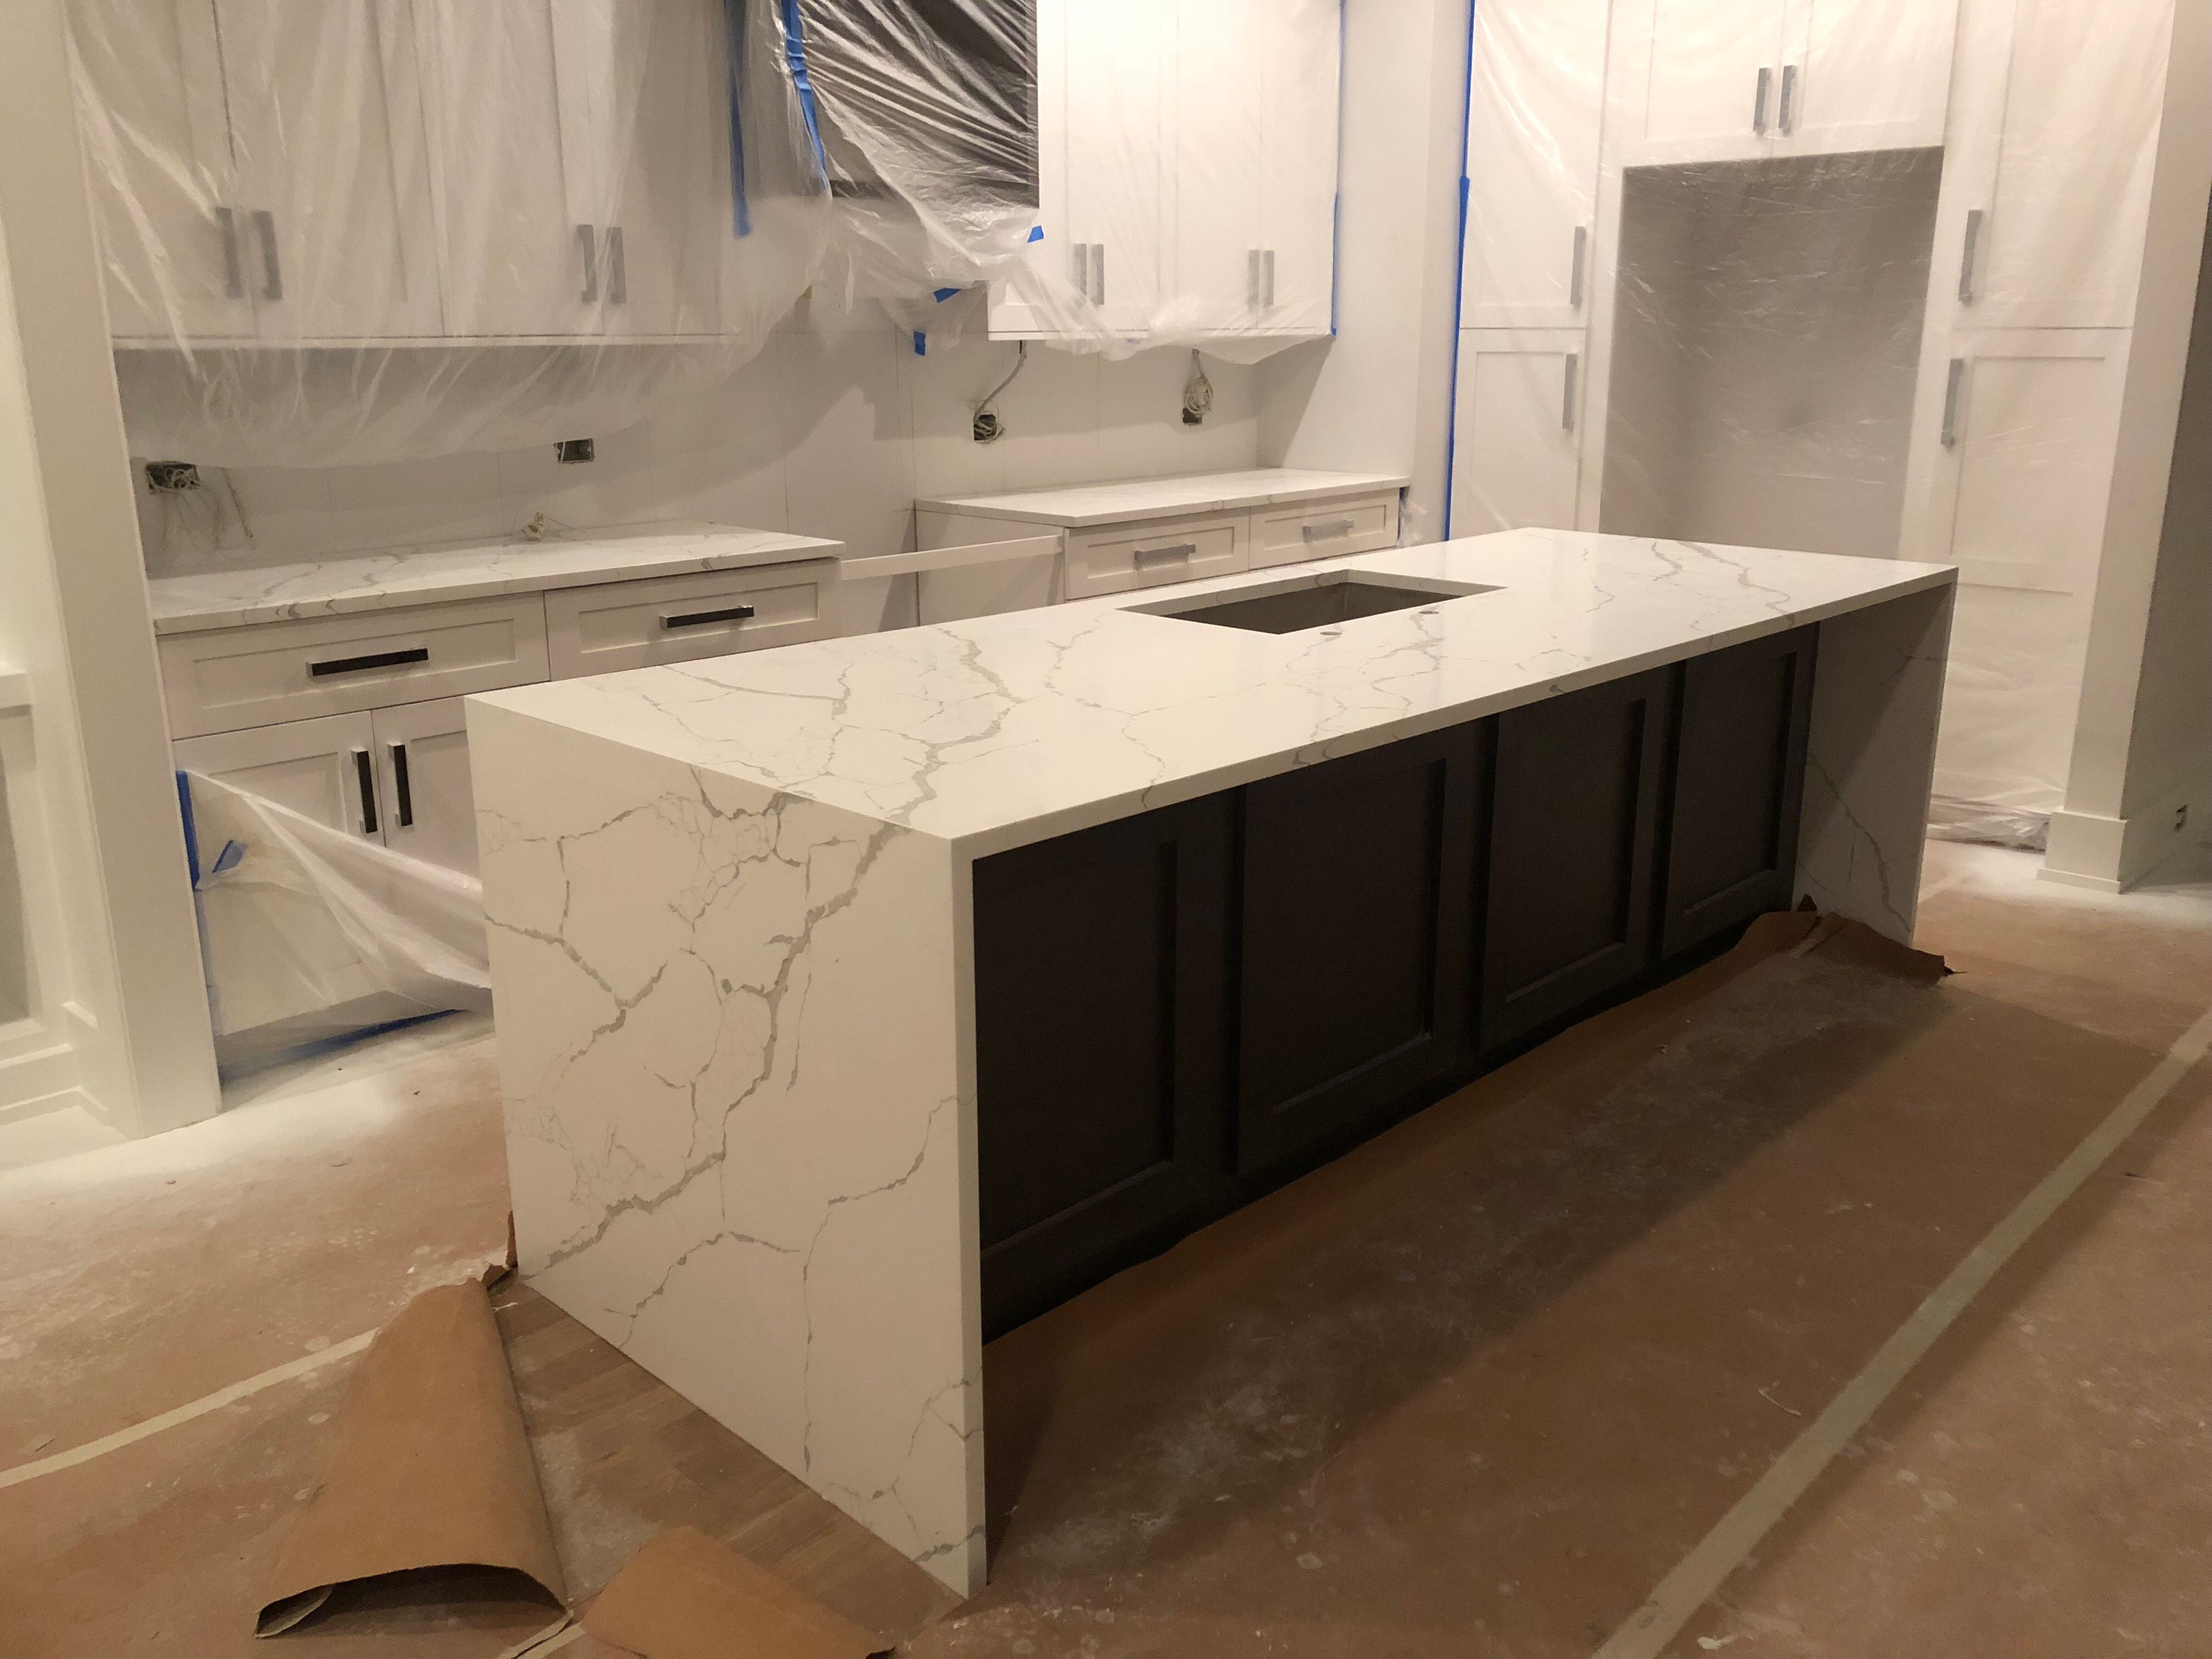 Calacatta Laza Quartz From Msi With Waterfall Panels And